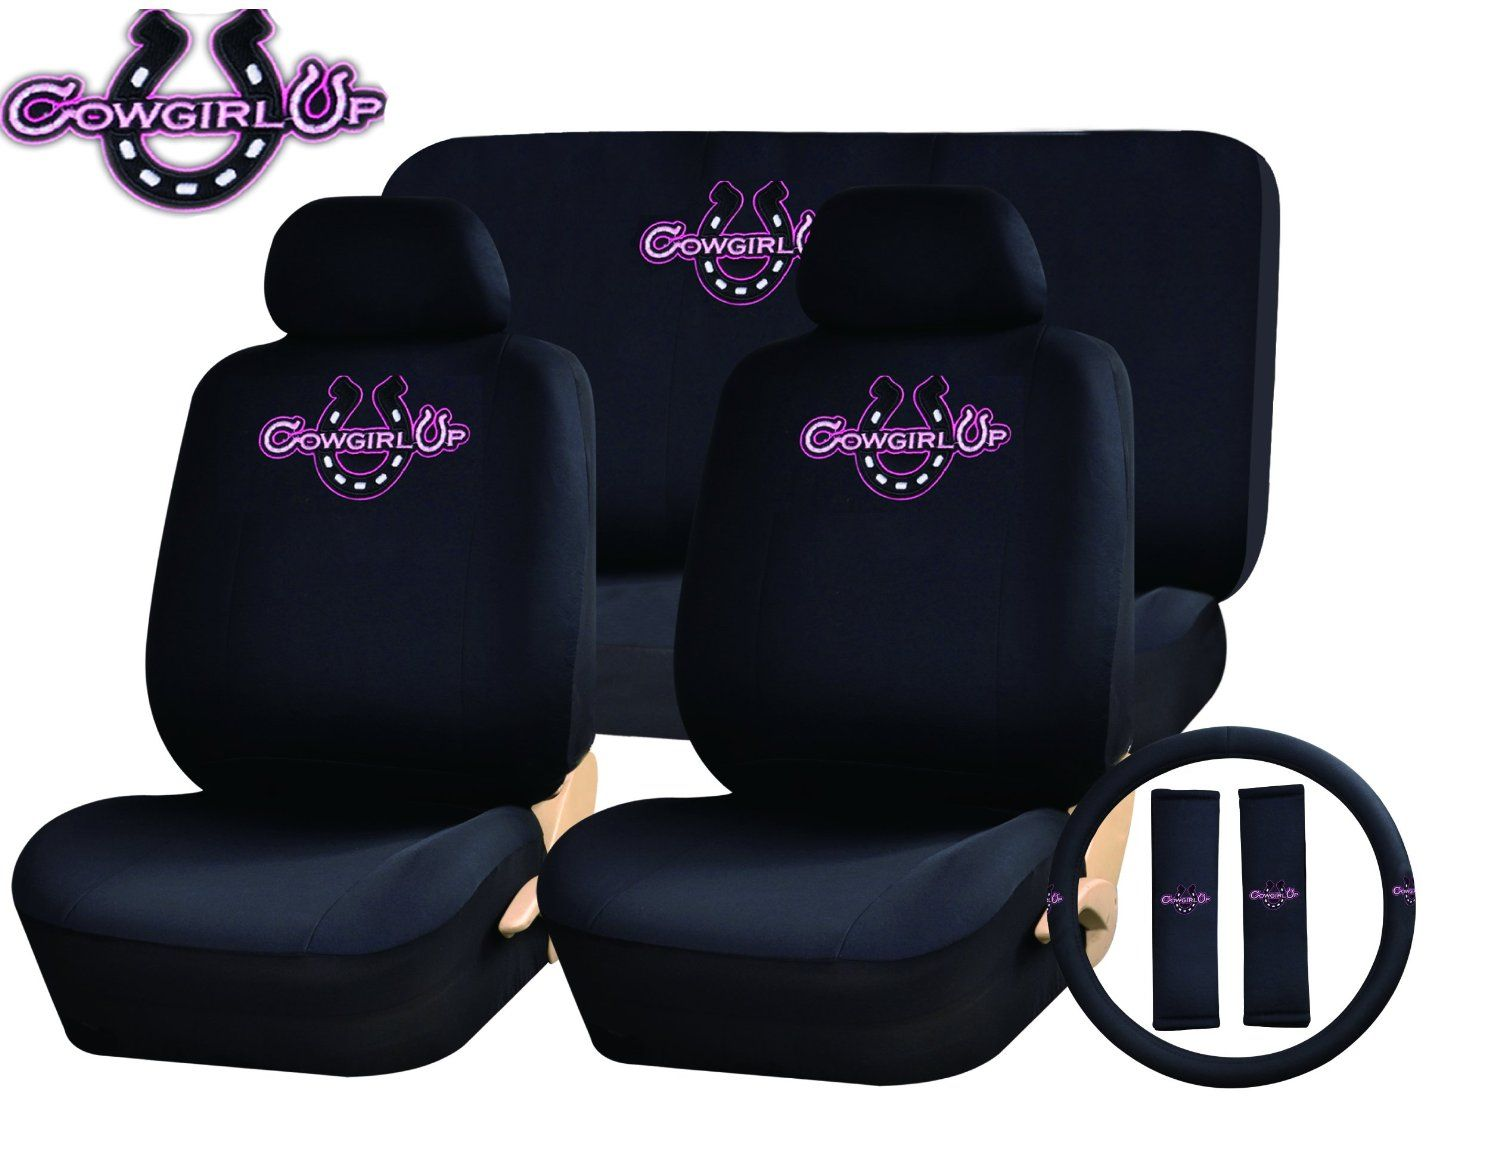 Girly Car Seat Covers and Mats for Women Girly car seat